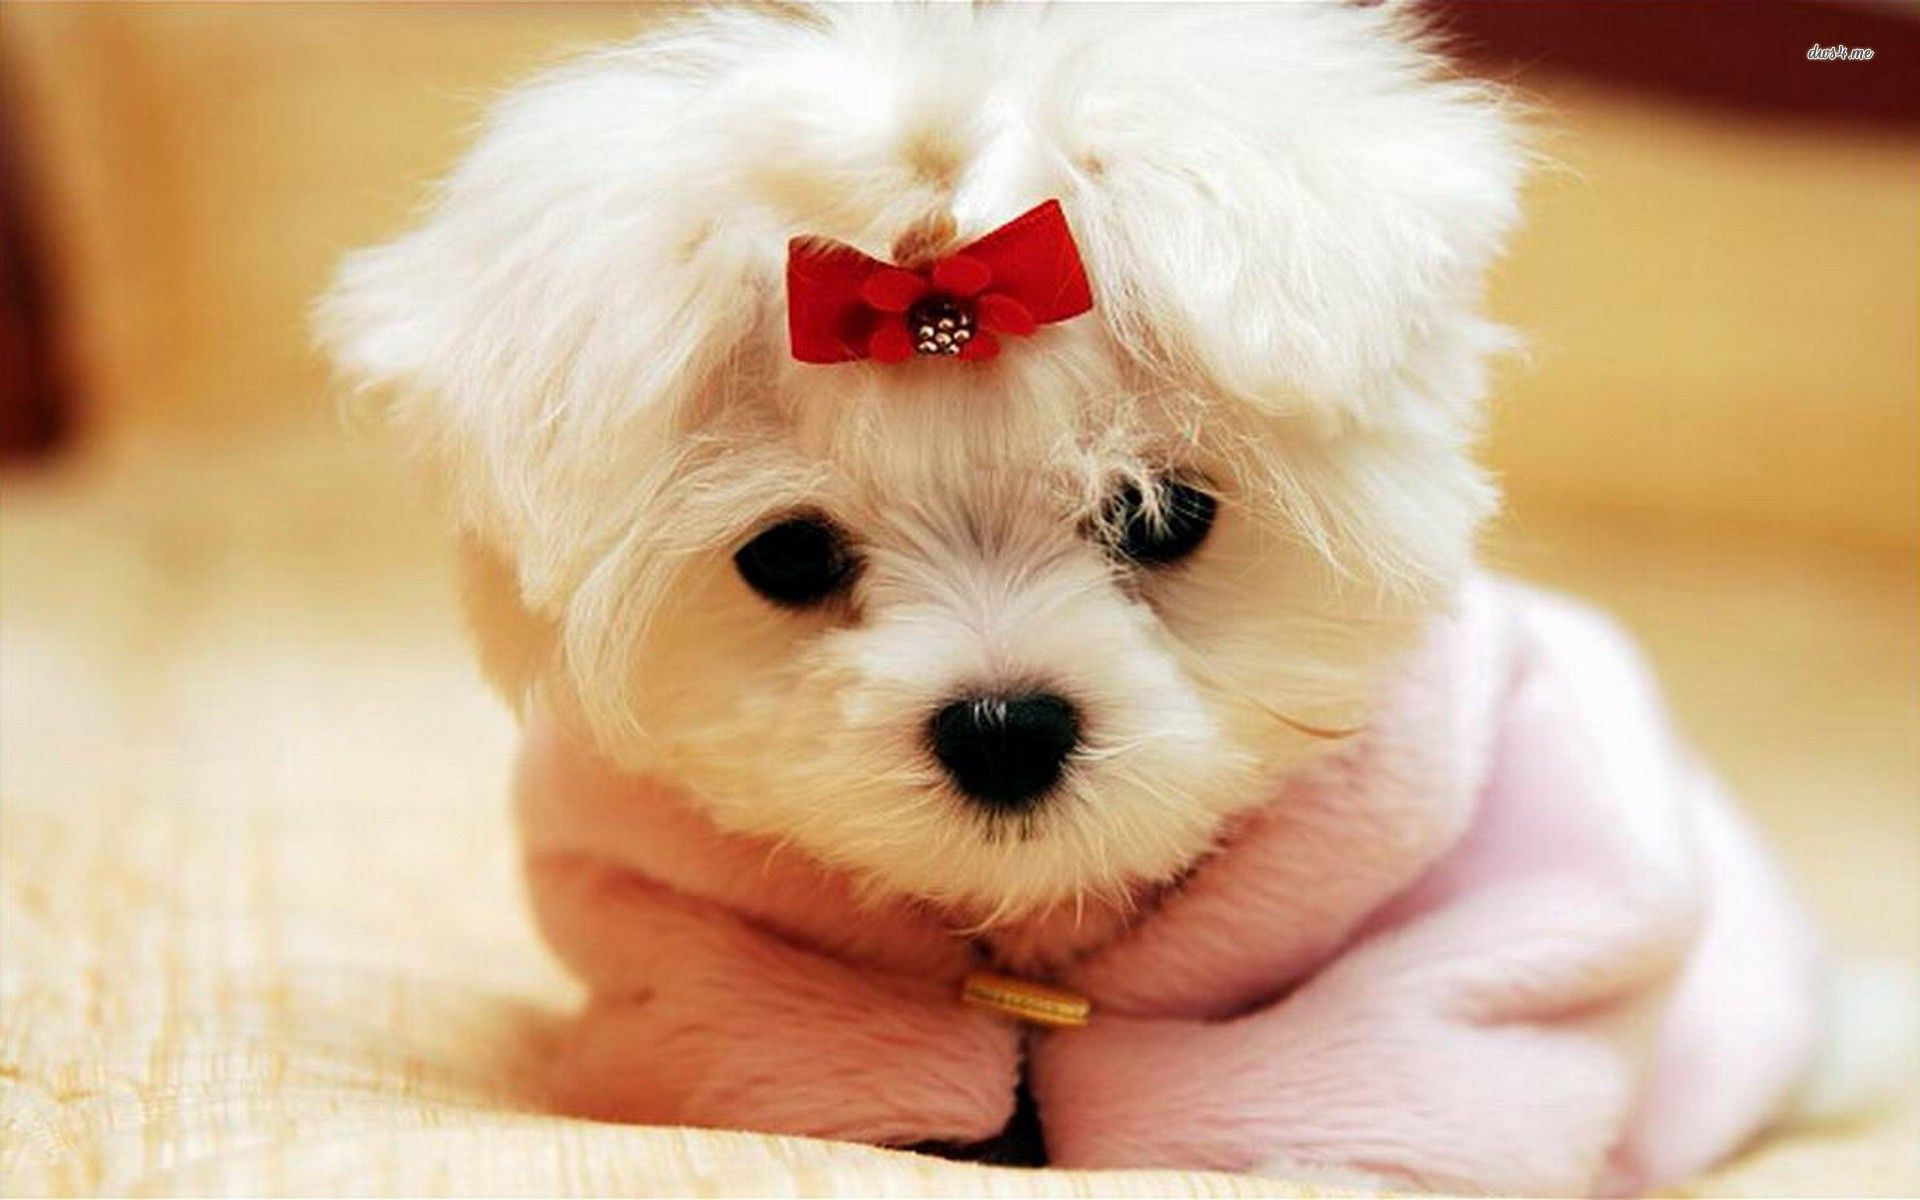 Cute Puppies 4 390189 High Definition Wallpapers wallalay 1920x1200